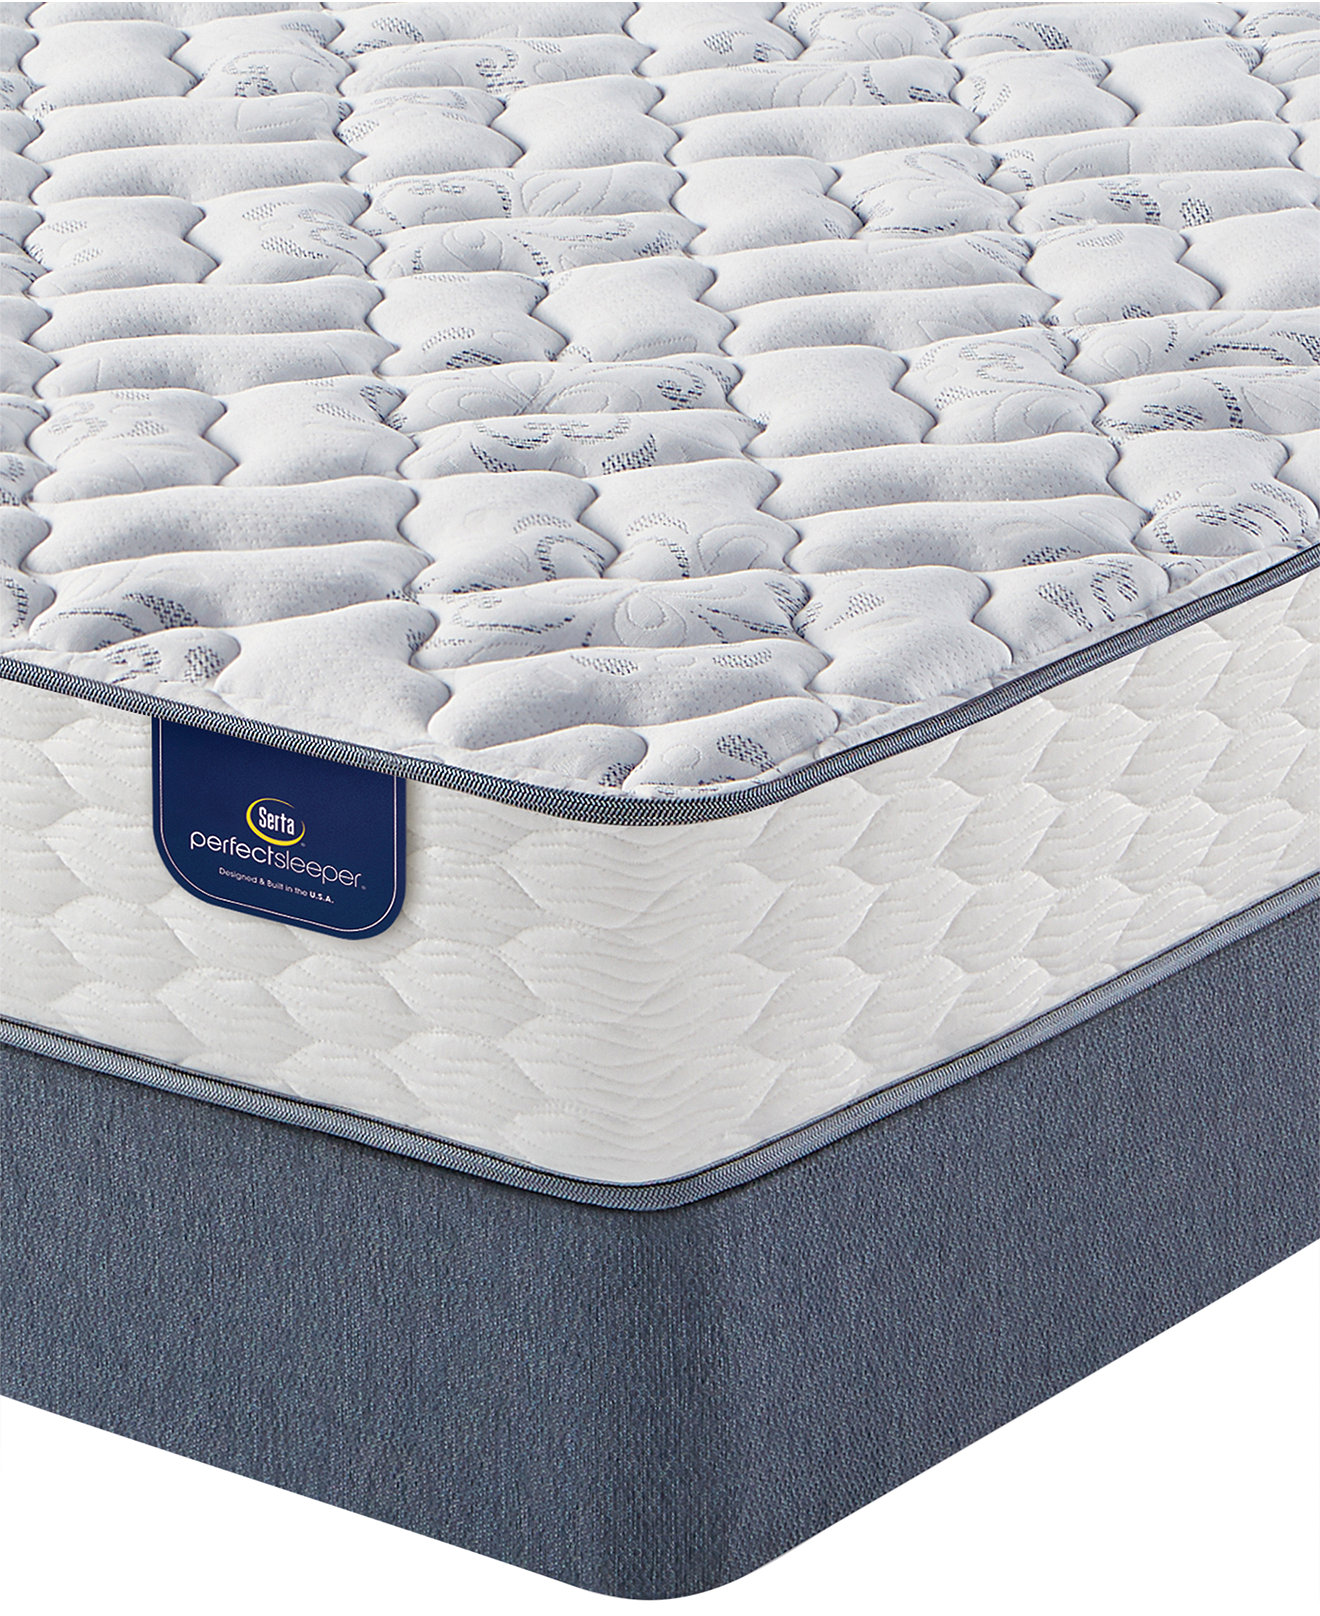 "Serta Perfect Sleeper® Cool Haven 9.5"" Firm Mattress Collection"